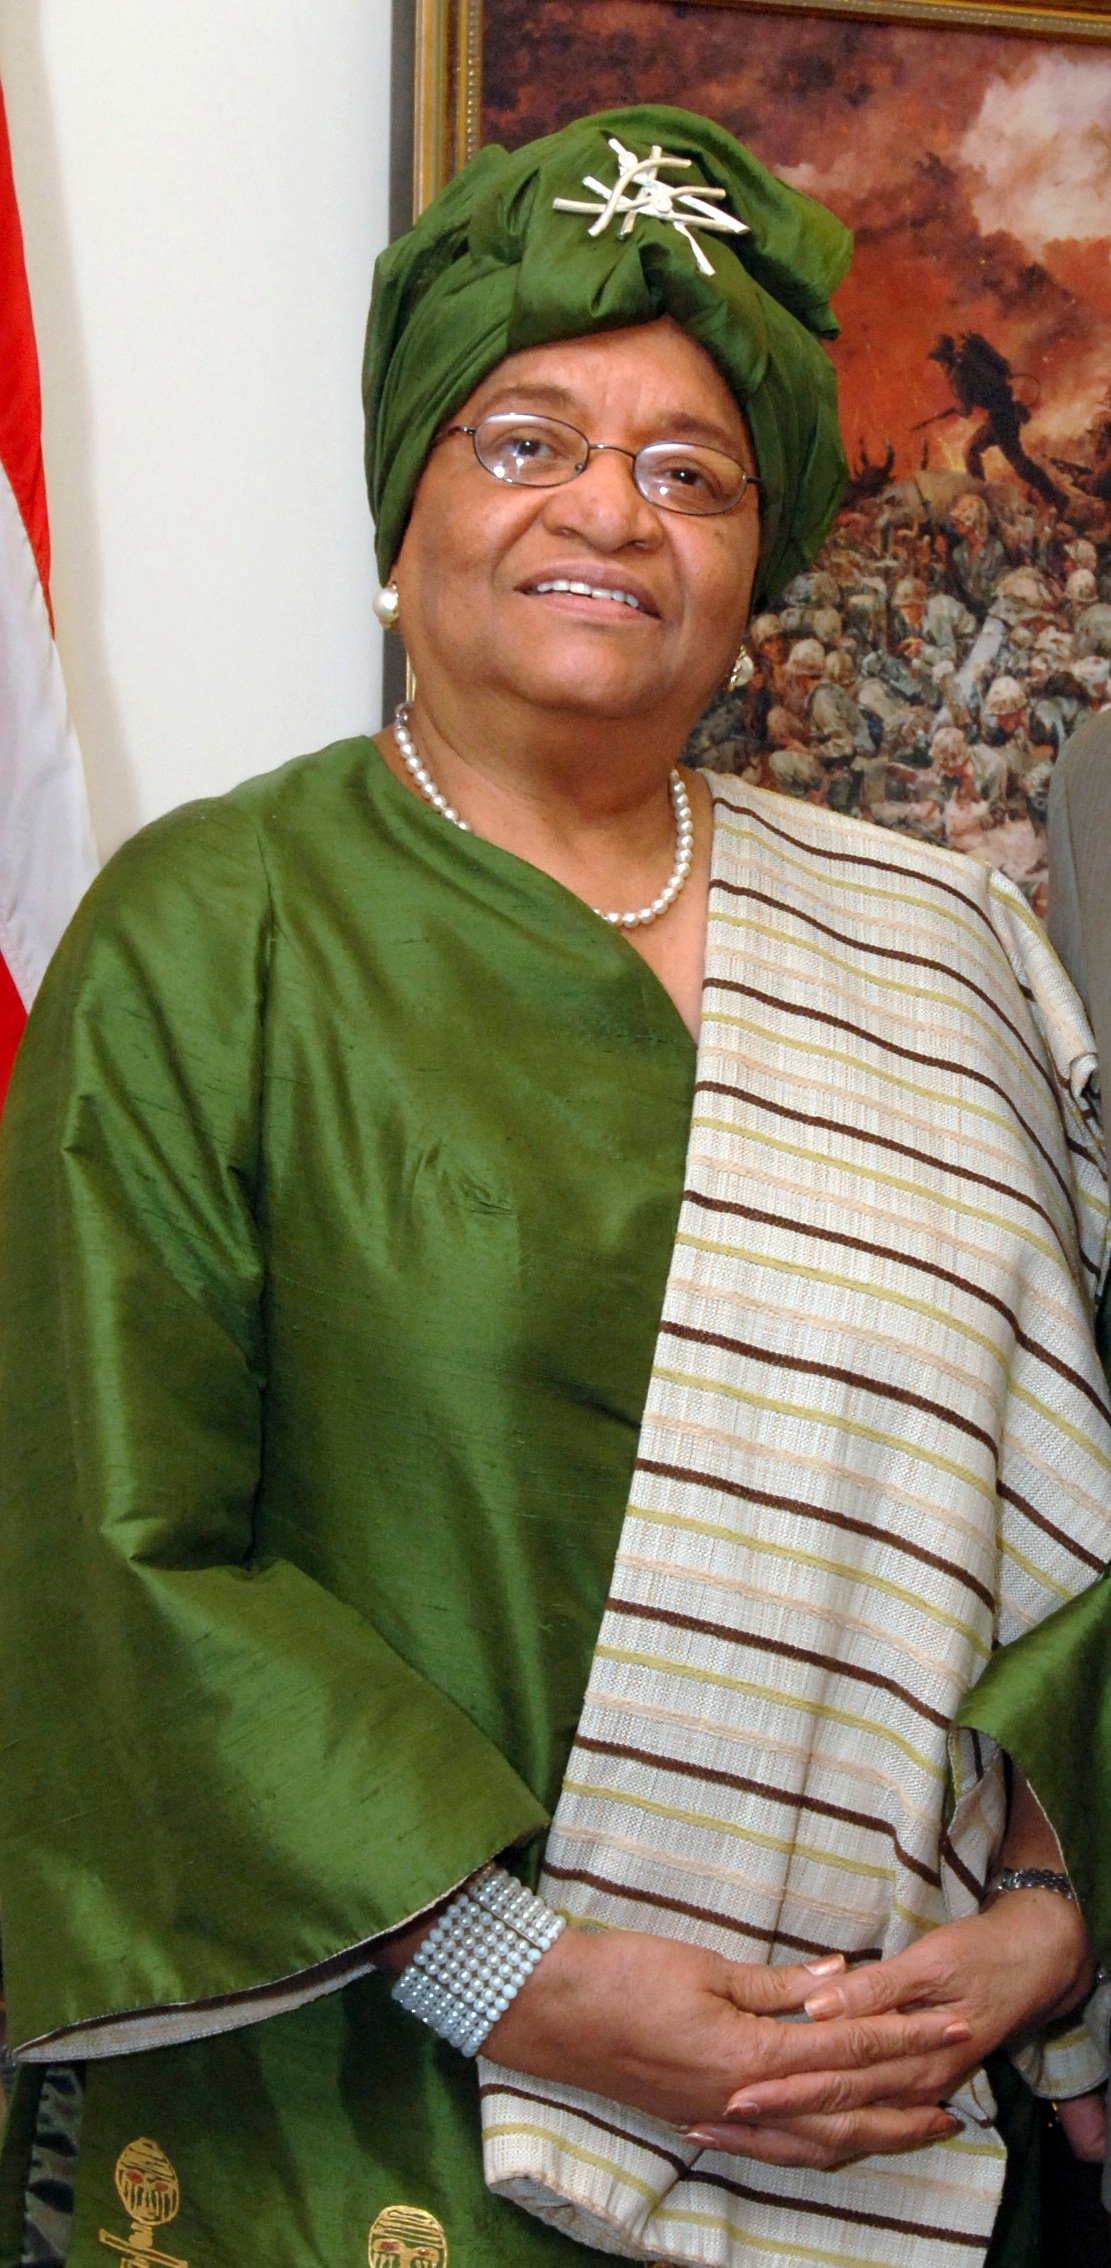 http://upload.wikimedia.org/wikipedia/commons/b/b1/Ellen_Johnson-Sirleaf_detail_071024-D-9880W-033.jpg